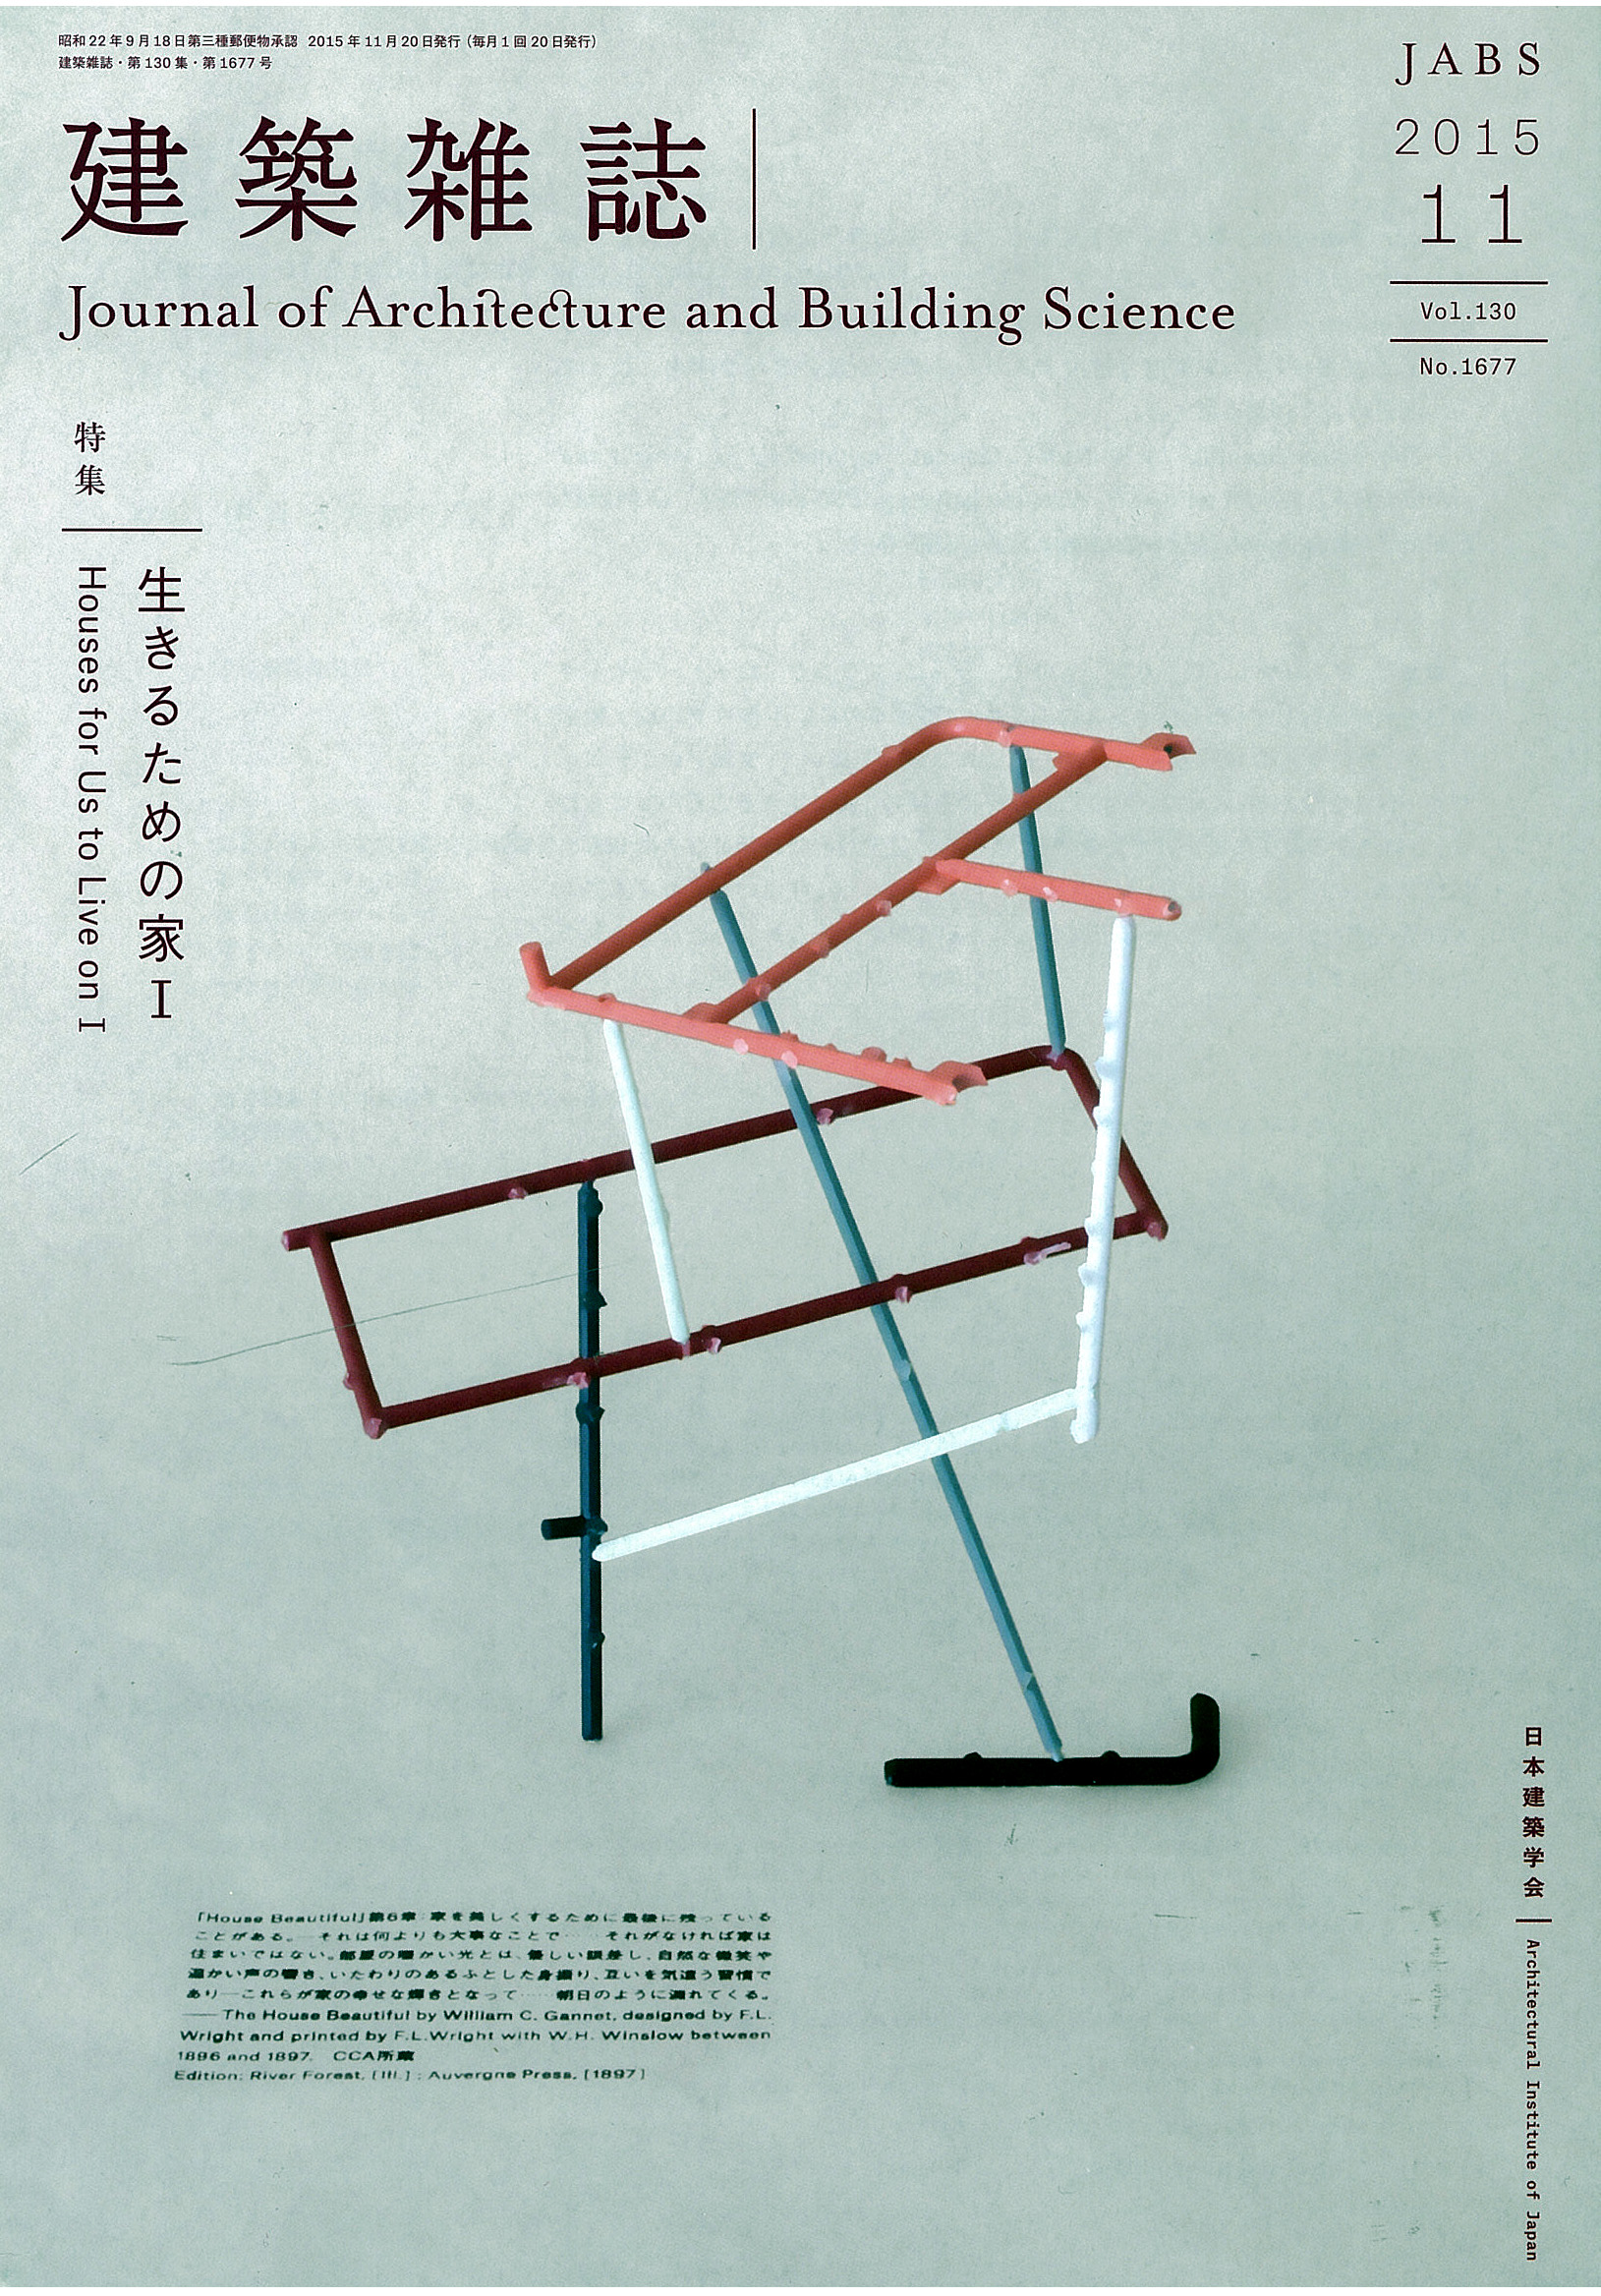 Journal of Architecture and Building Science Vol.130 - Nov 2015